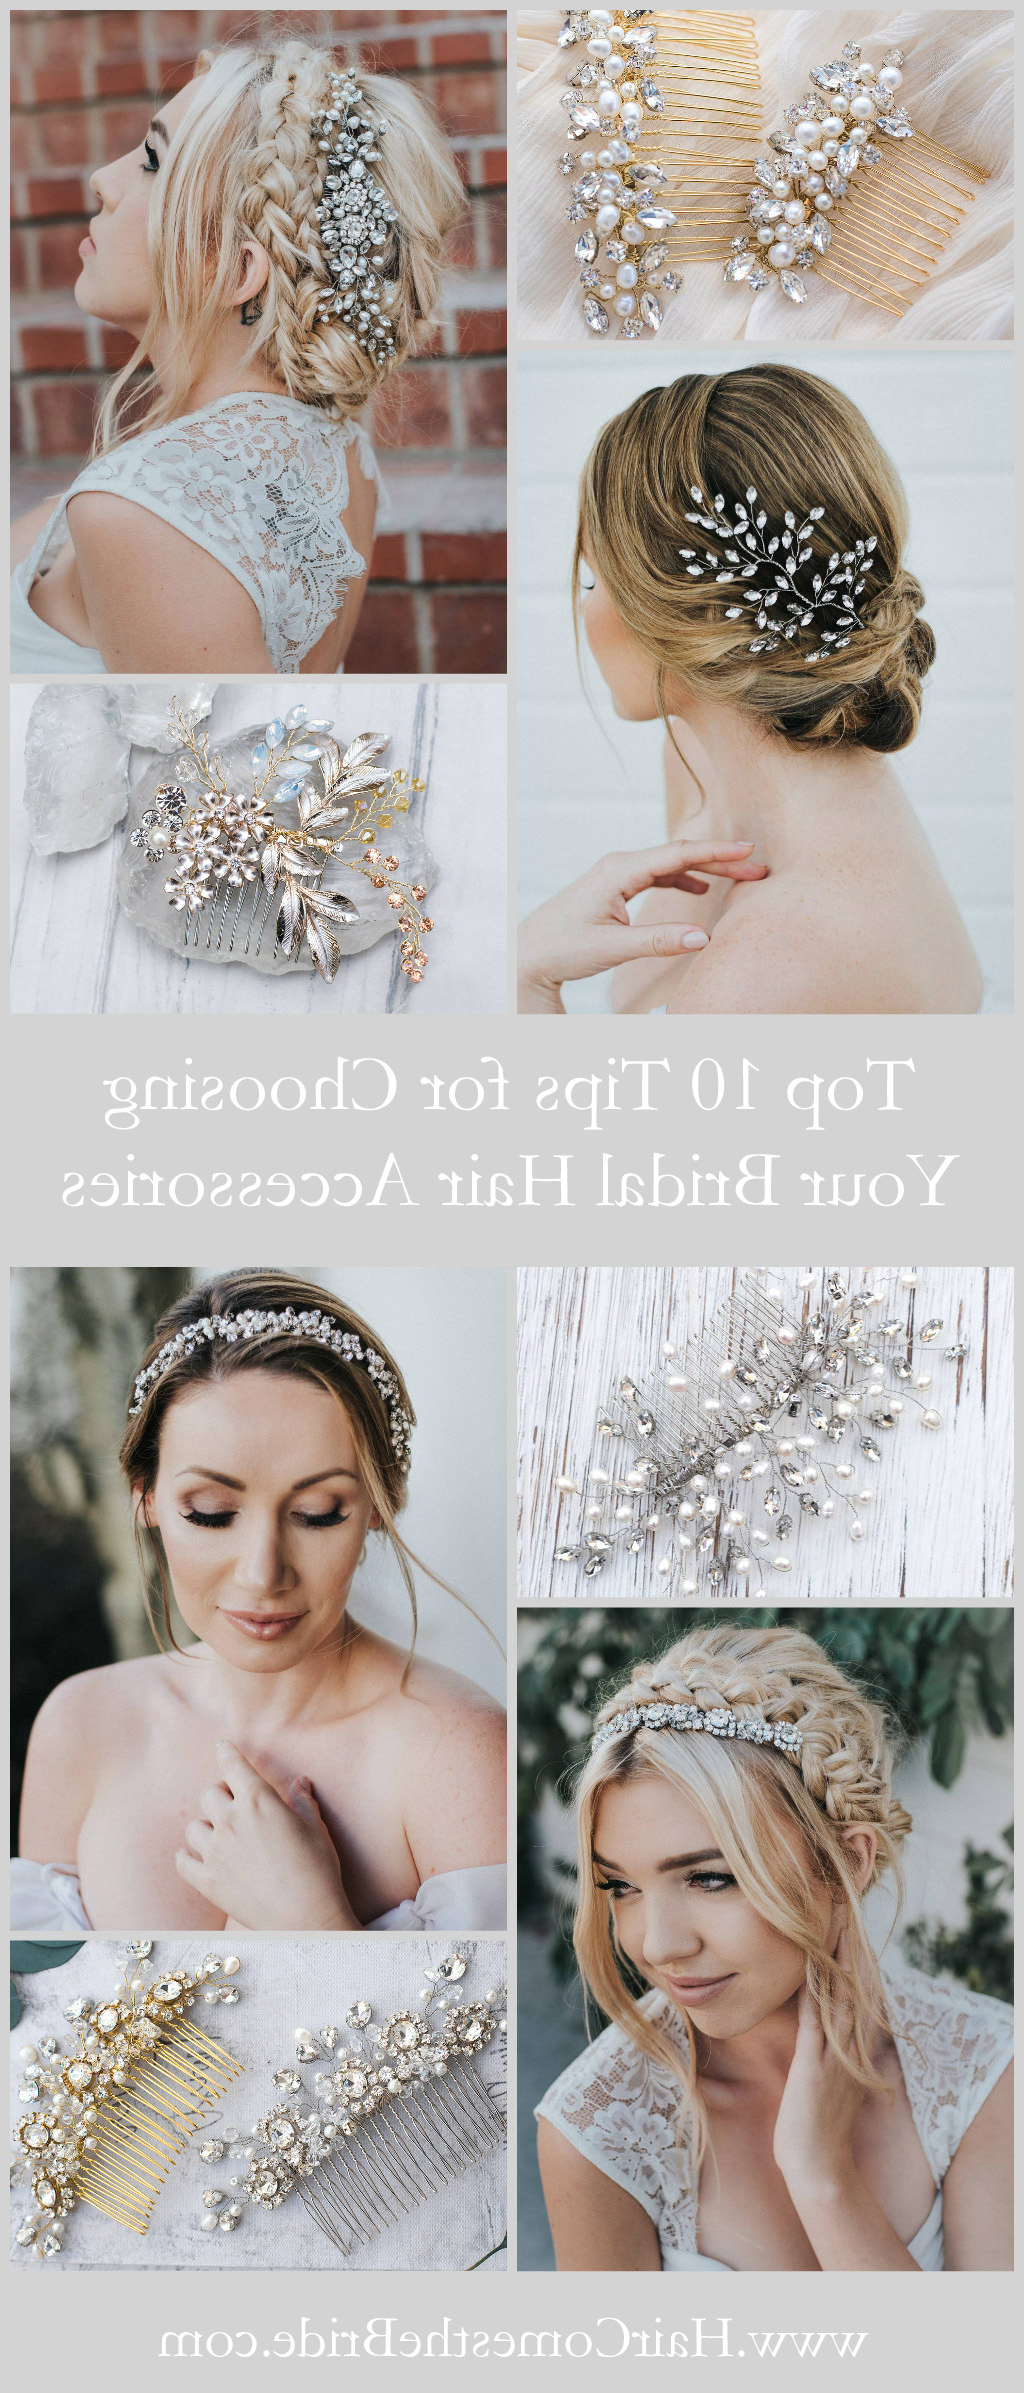 Famous Side Curls Bridal Hairstyles With Tiara And Lace Veil With Regard To Top 10 Tips For Choosing Your Bridal Hair Accessories – Hair Comes (View 7 of 20)